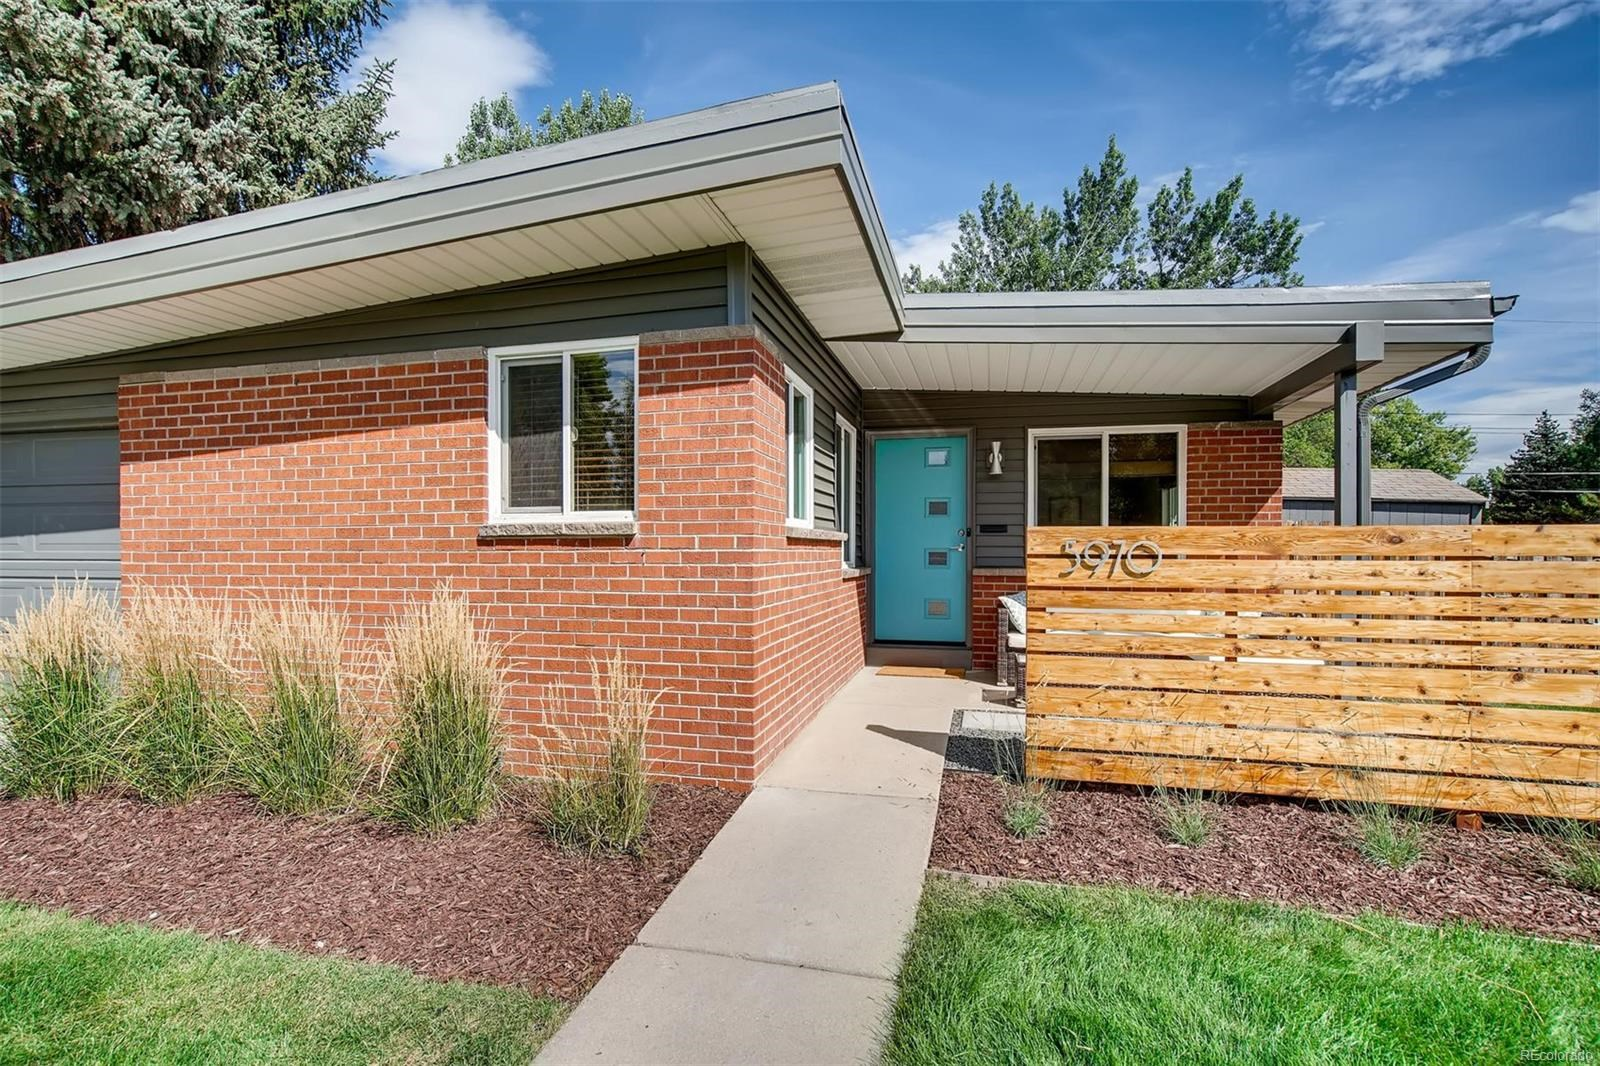 MLS# 4109118 - 1 - 5970 Dudley Court, Arvada, CO 80004